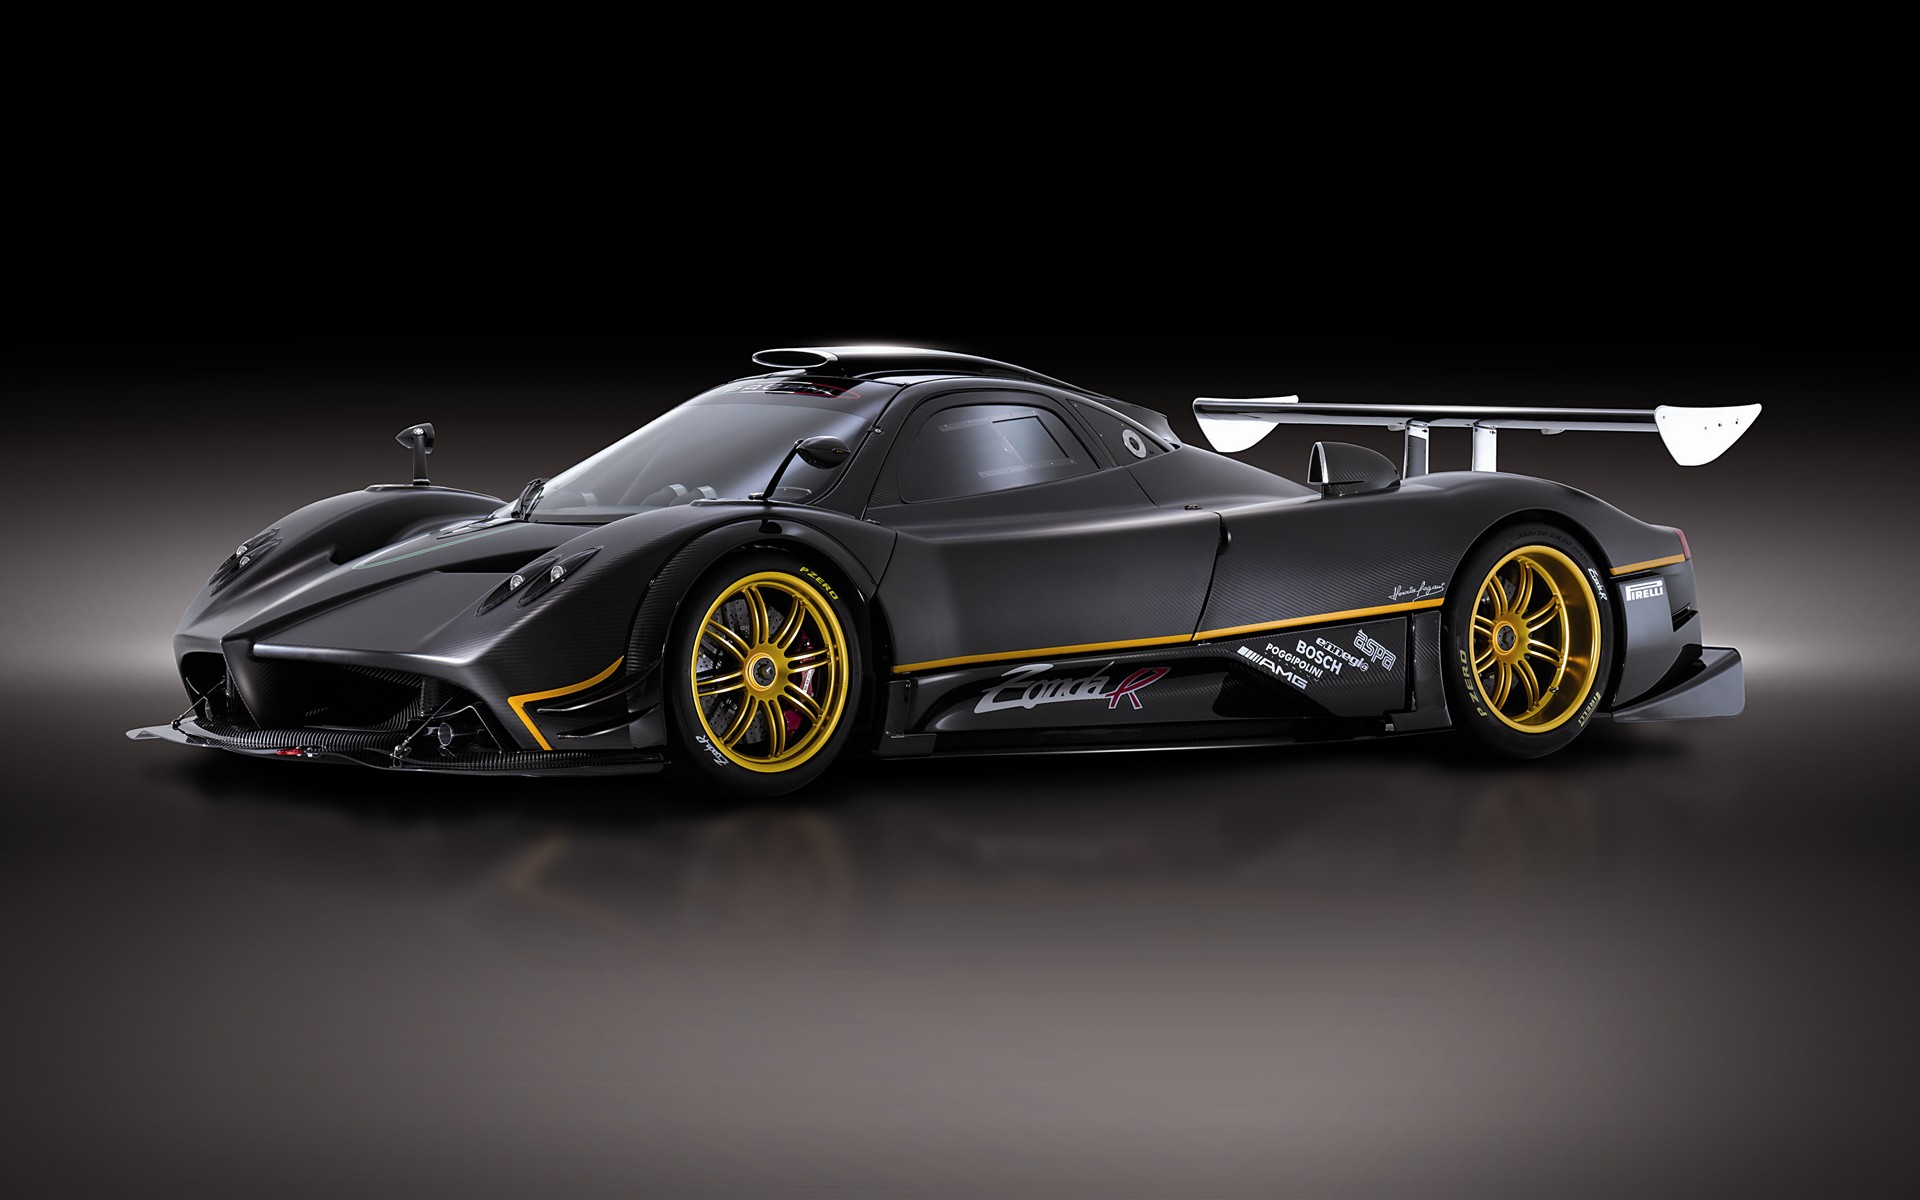 Zonda R Super Car Wallpapers Zonda R Super Car HD Wallpapers 1920x1200